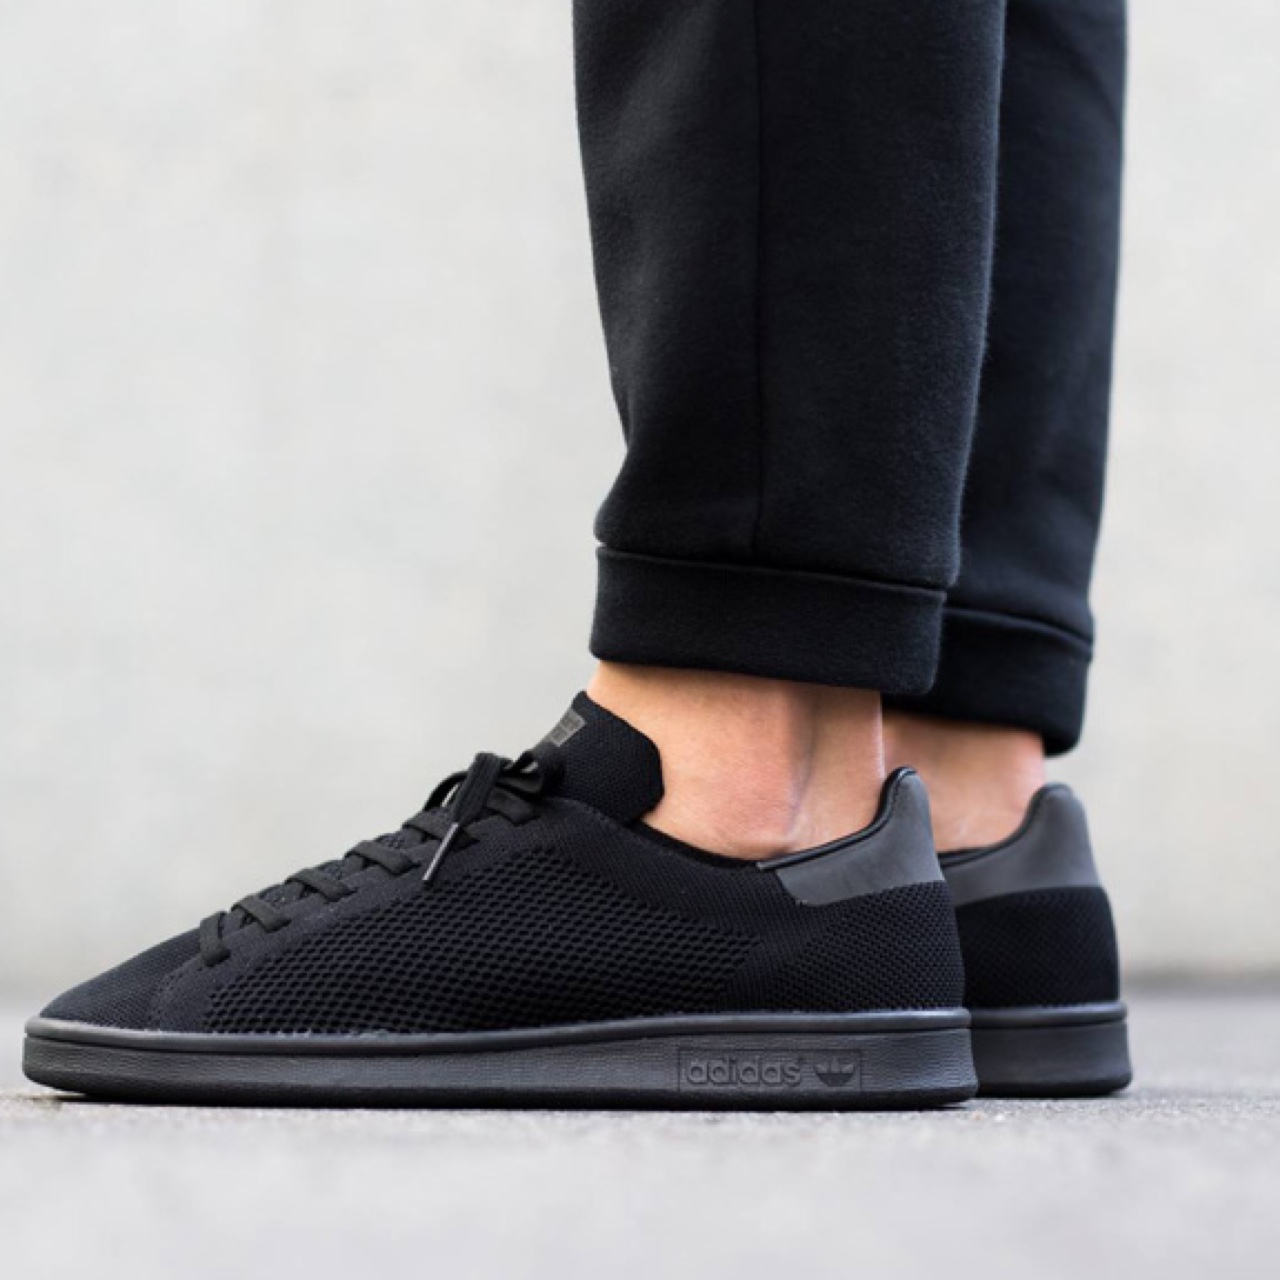 Adidas Stan Smith All Black PrimeKnit., Wore just a...